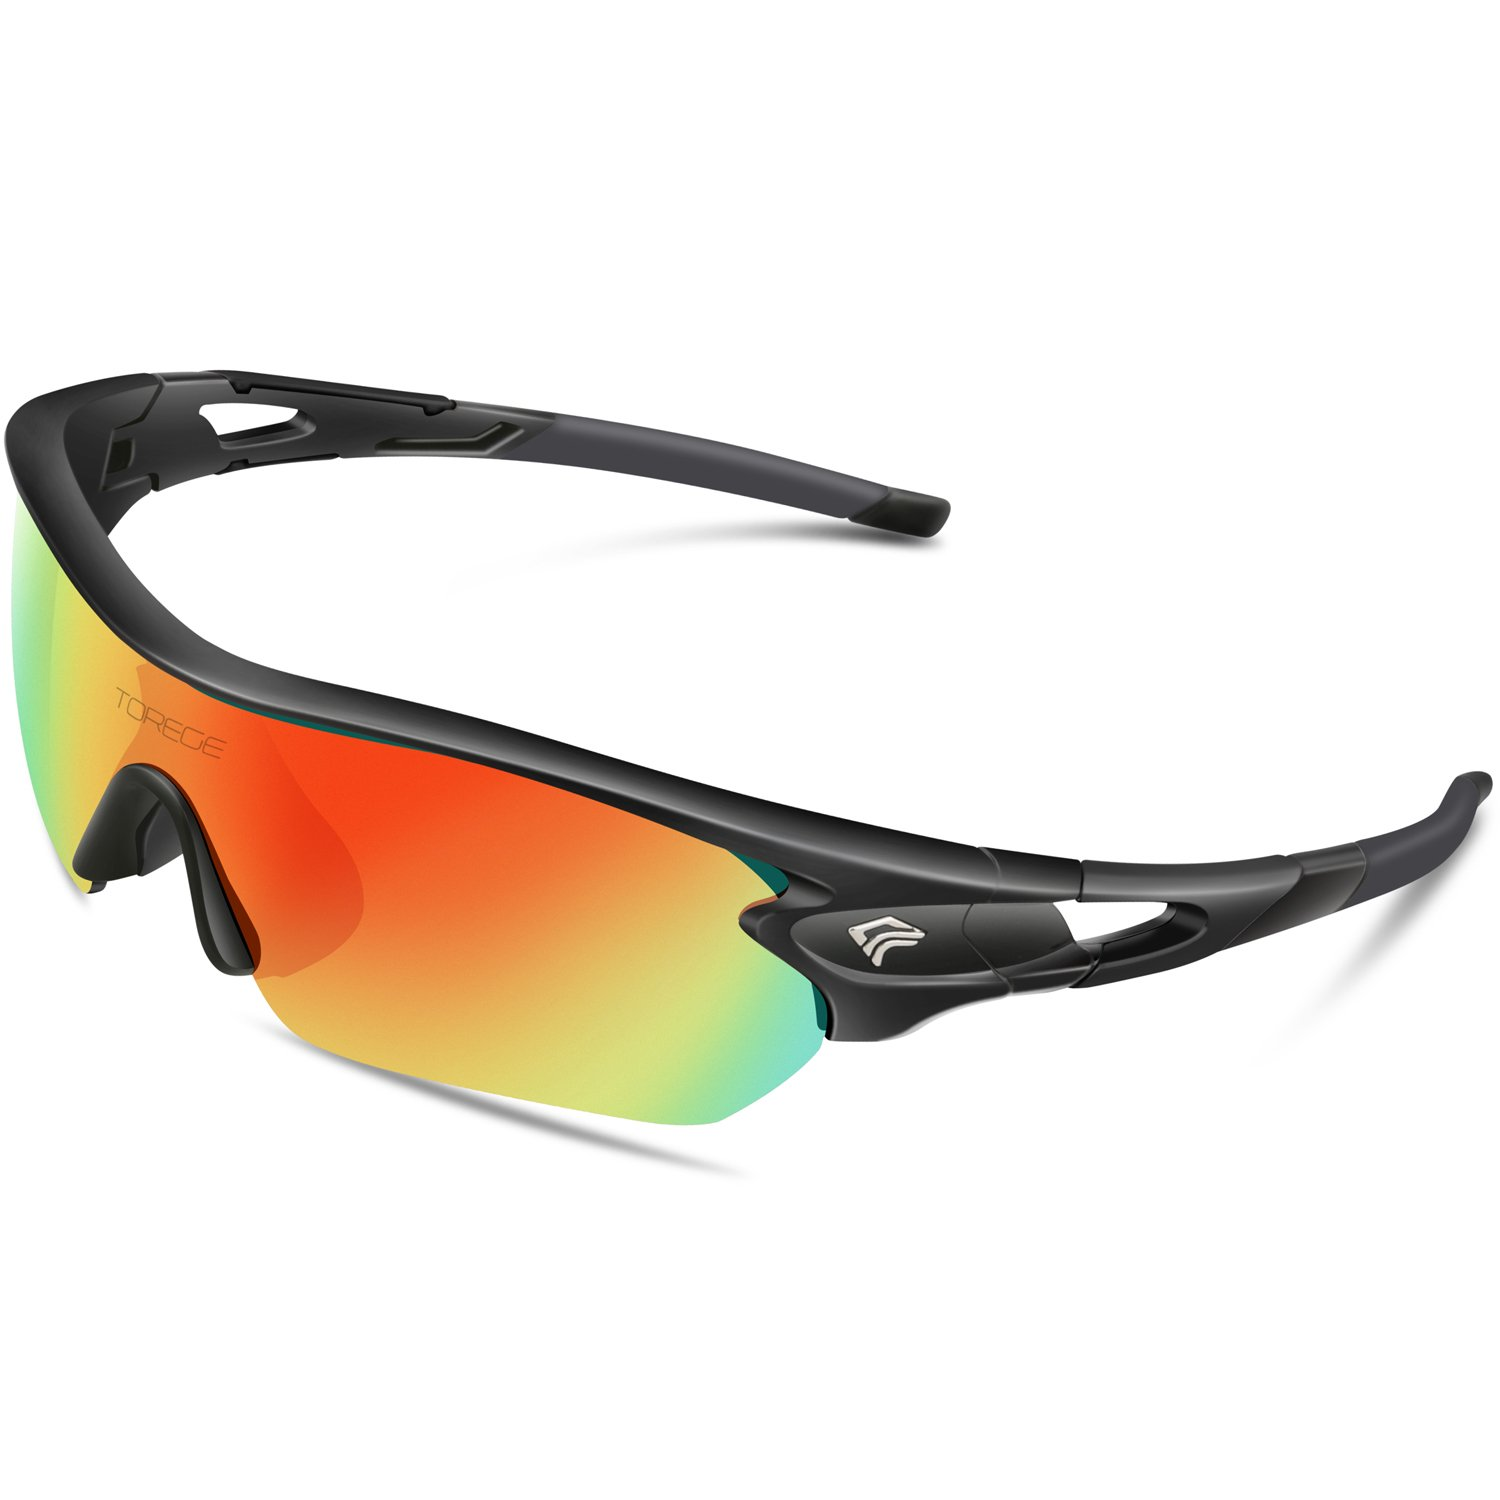 7c15c4c3e3 Best Polarized Fishing Sunglasses For The Money - Fly Fishing Elite